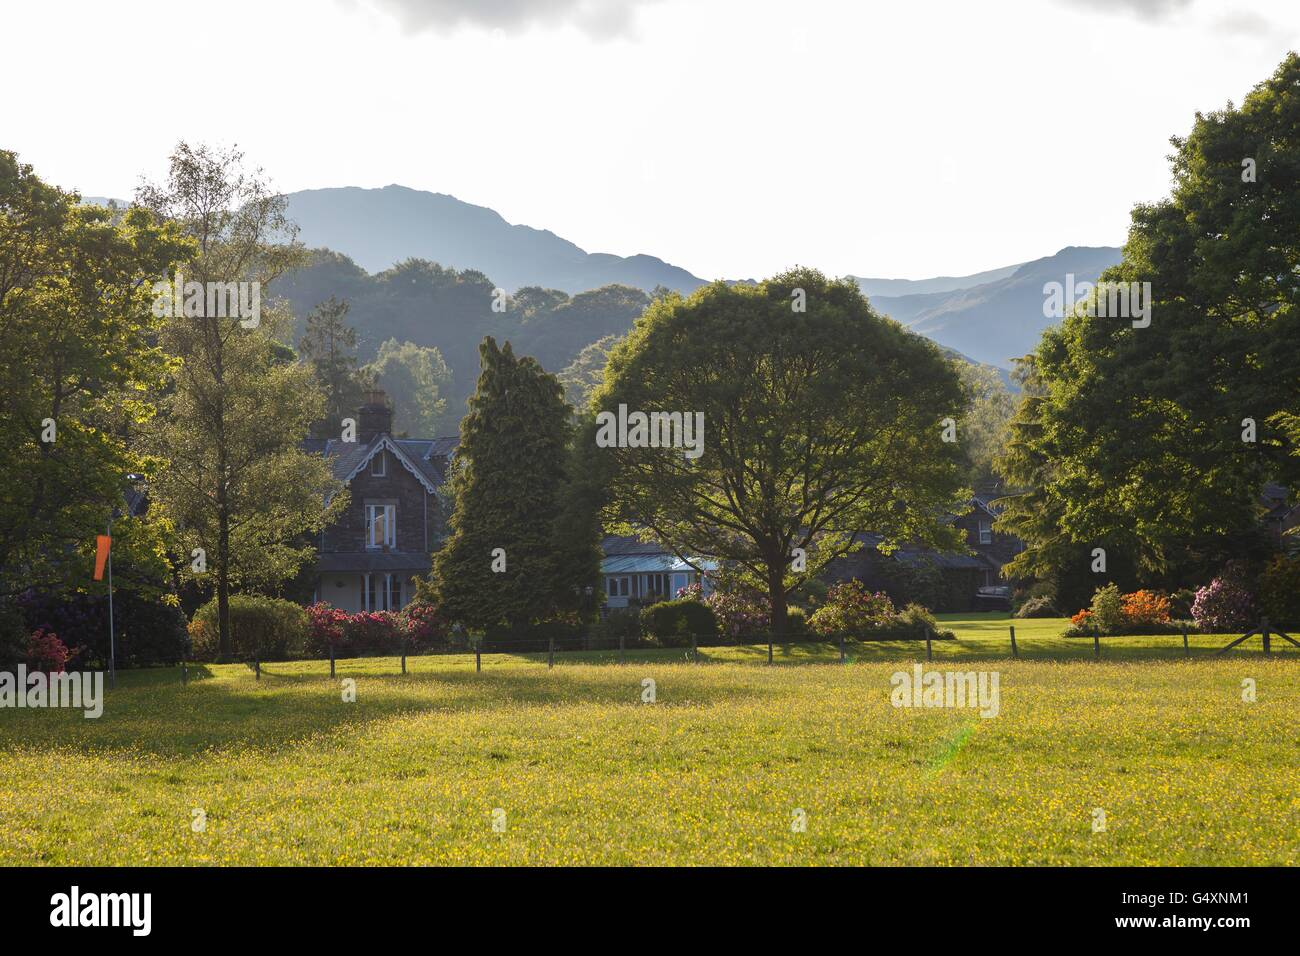 Grasmere village, lake District, Cumbria, England - Stock Image